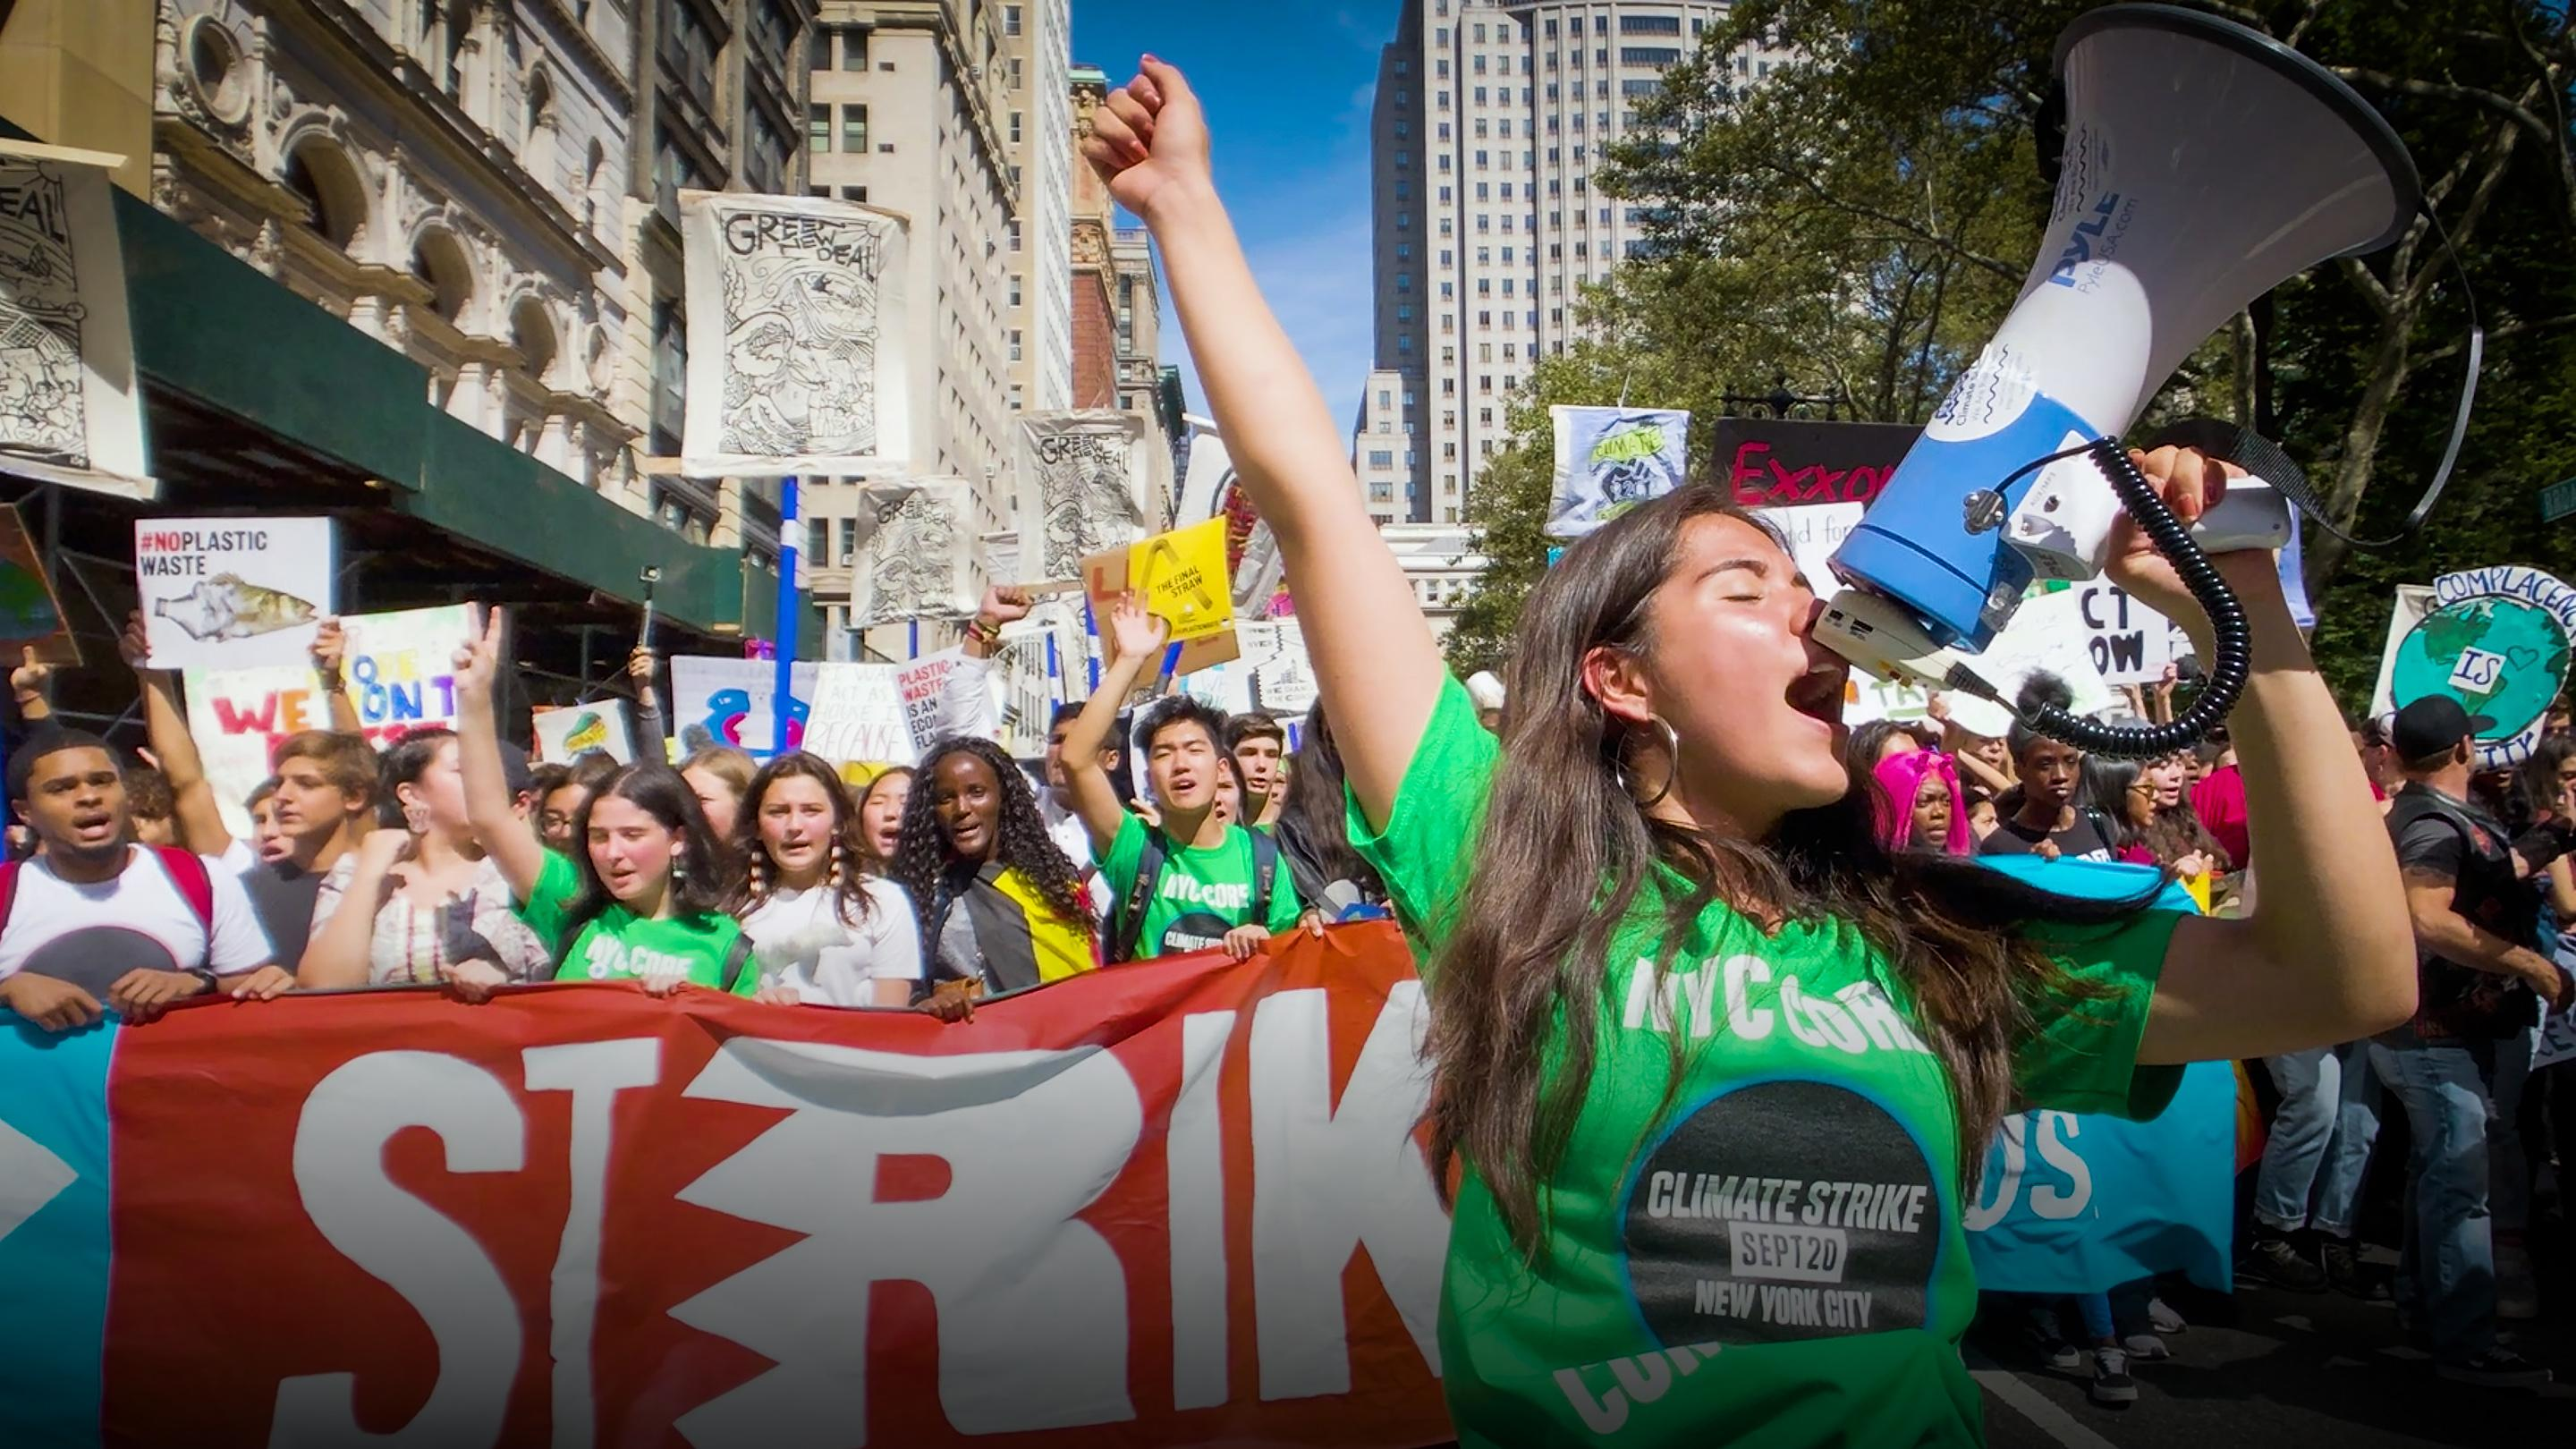 Why I fight for climate justice | Xiye Bastida